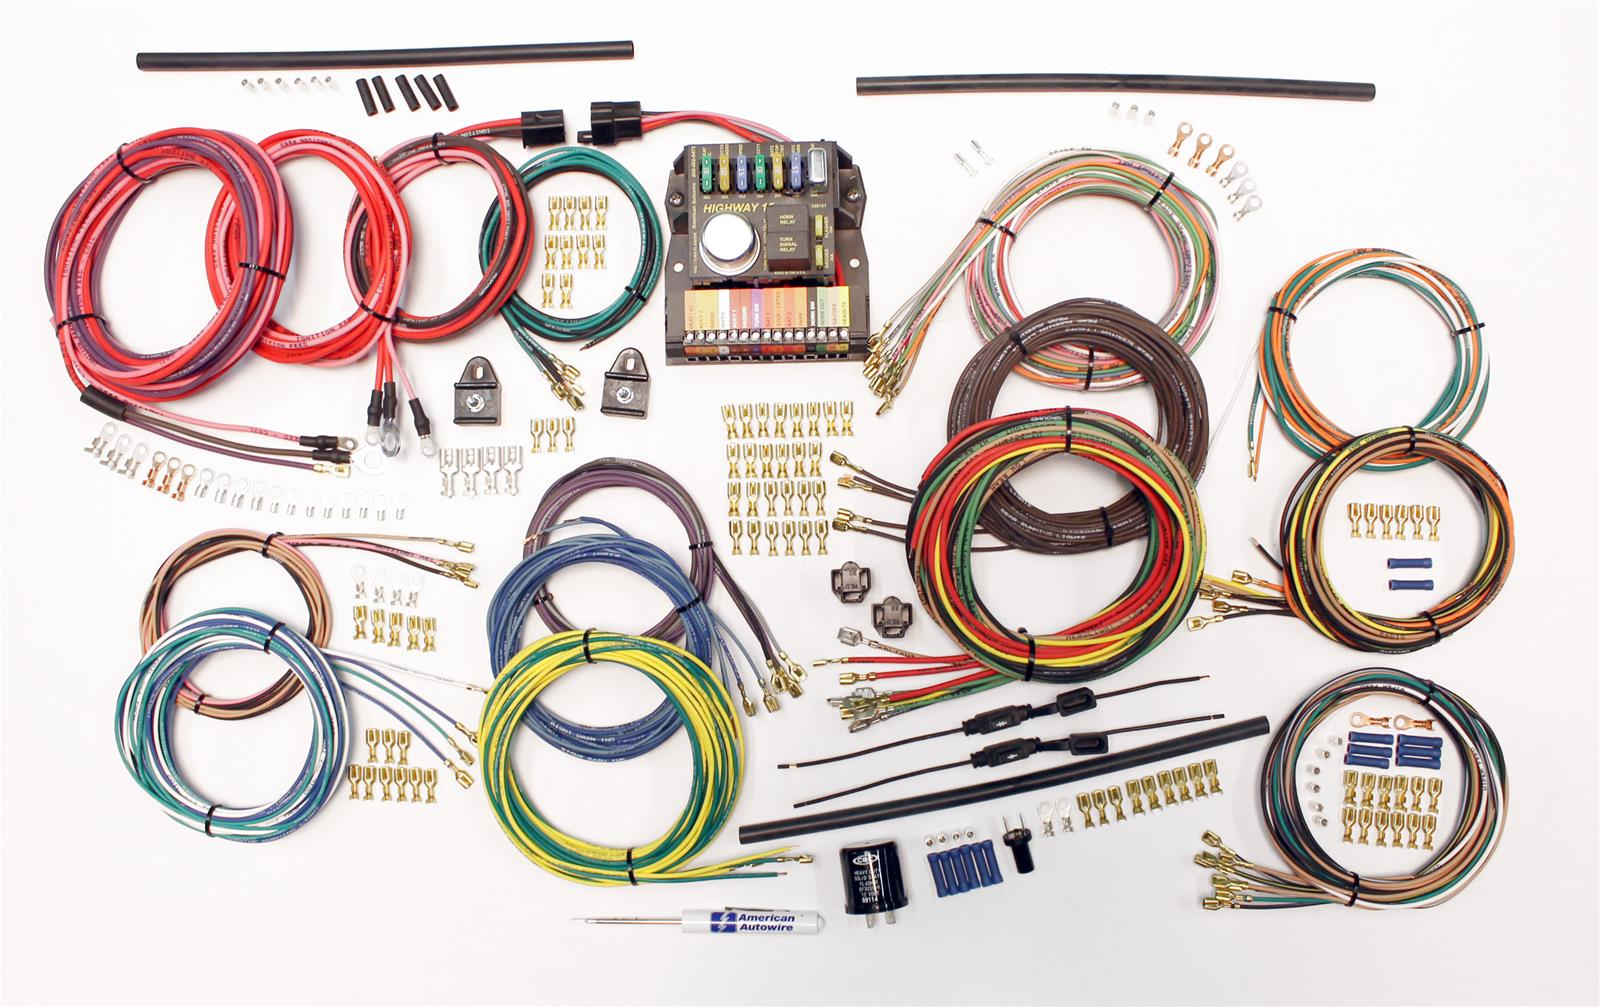 American Autowire Classic Update Series Wiring Harness Kits 510419 - Free  Shipping on Orders Over $49 at Summit Racing